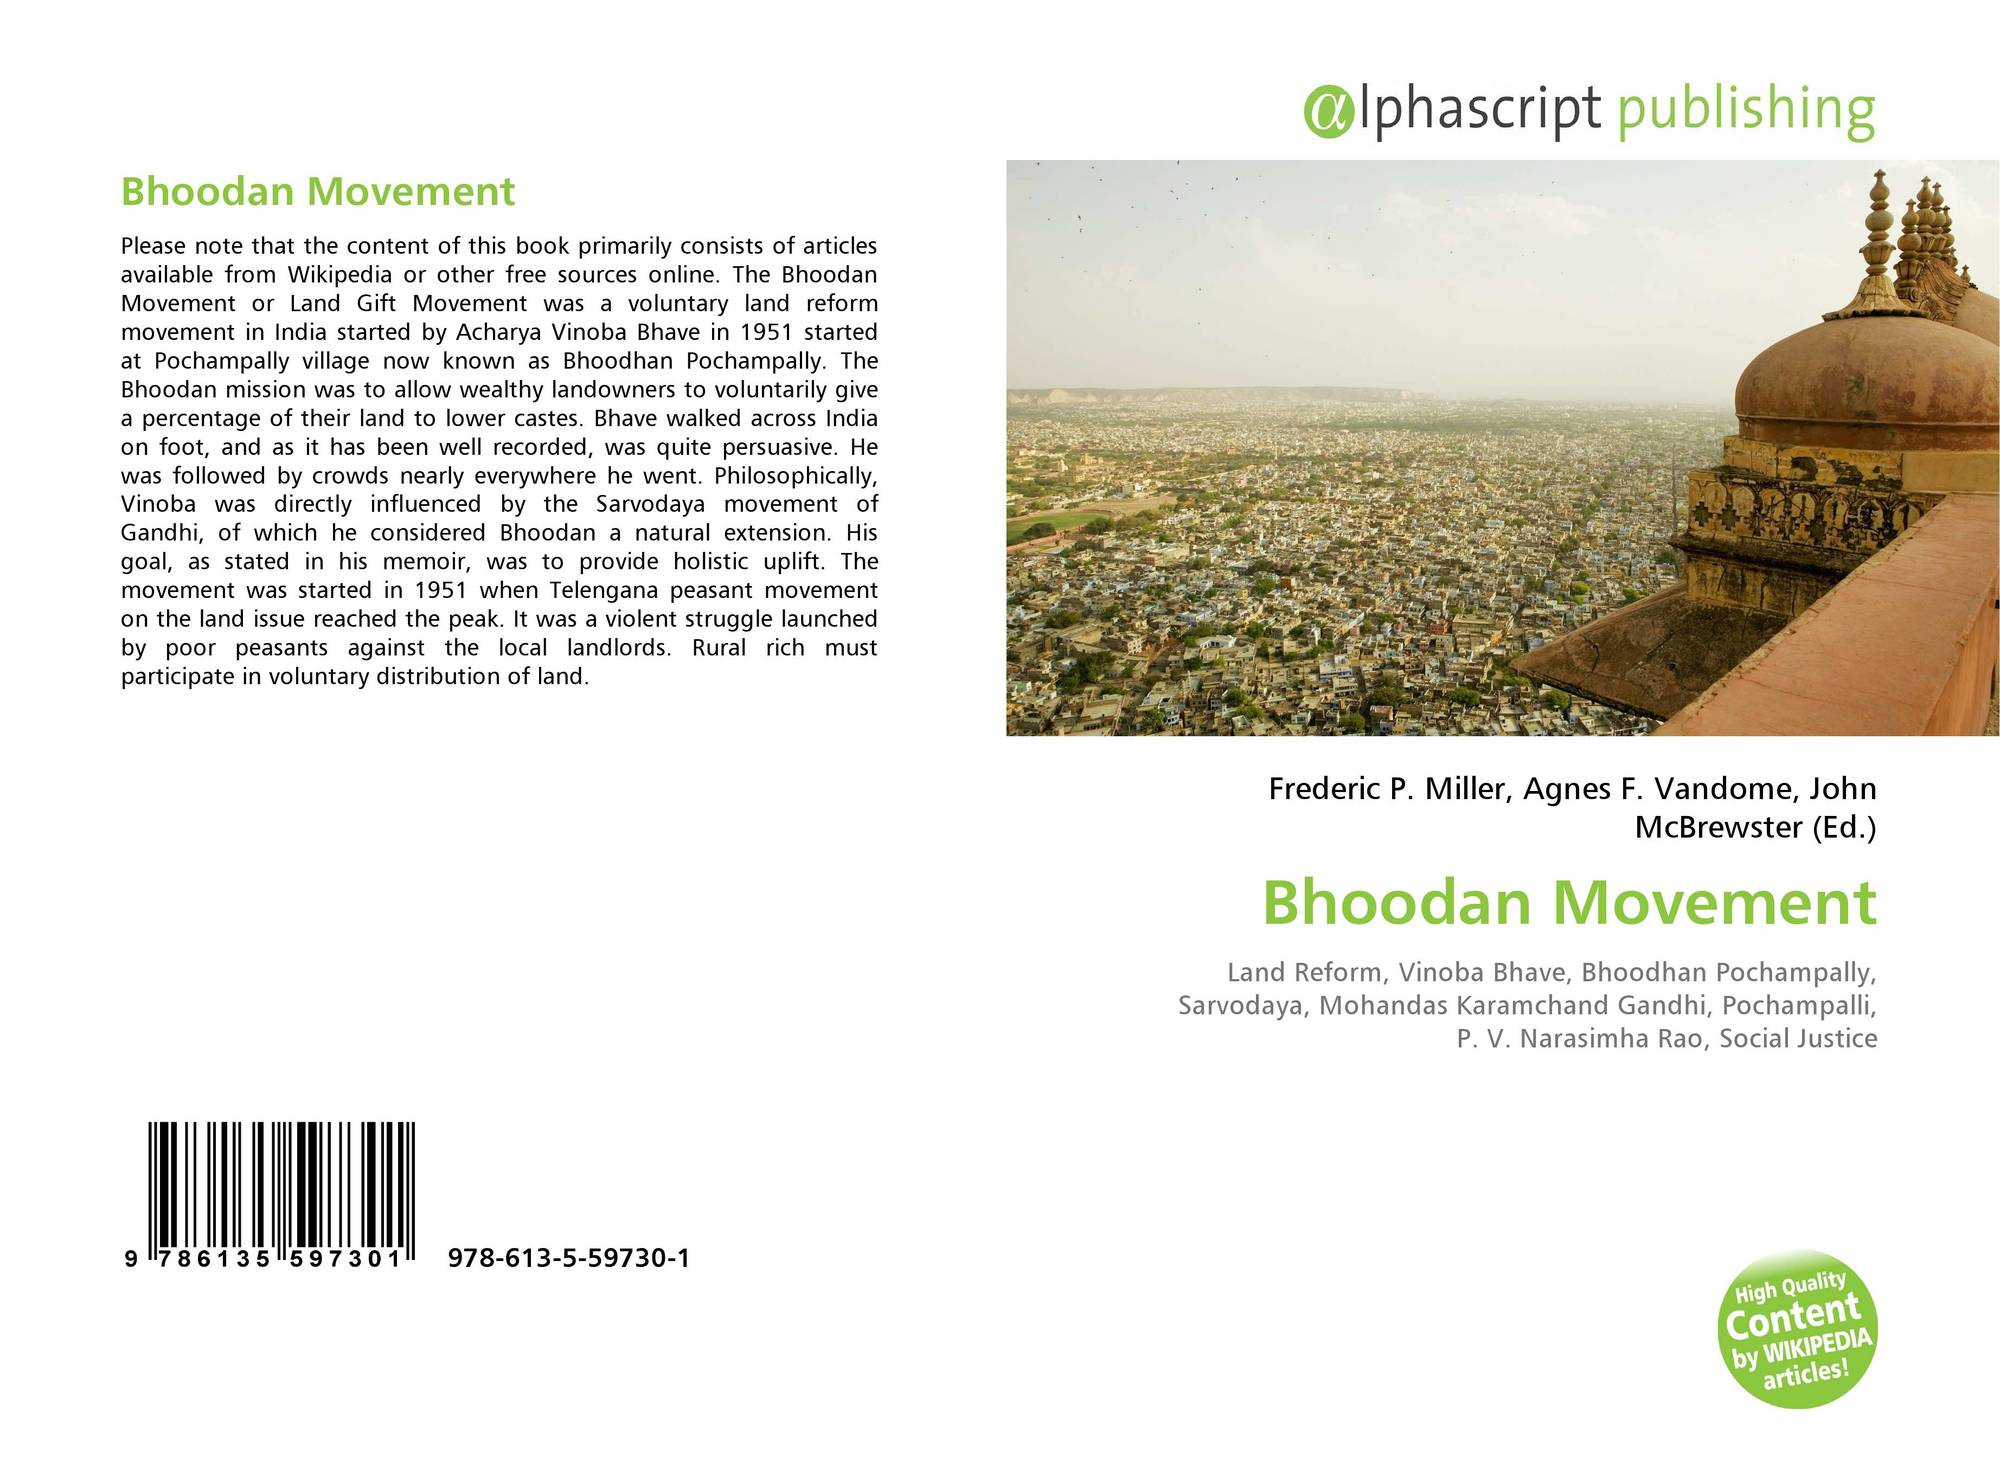 bhoodan movement essay Bhoodan movement in 1951, vinoba bhave started his peace-trek on foot through the violence-torn region of telangana on april 18, 1951, the harijans of the pochampalli village requested him to provide them with around 80 acres of land to make a living.